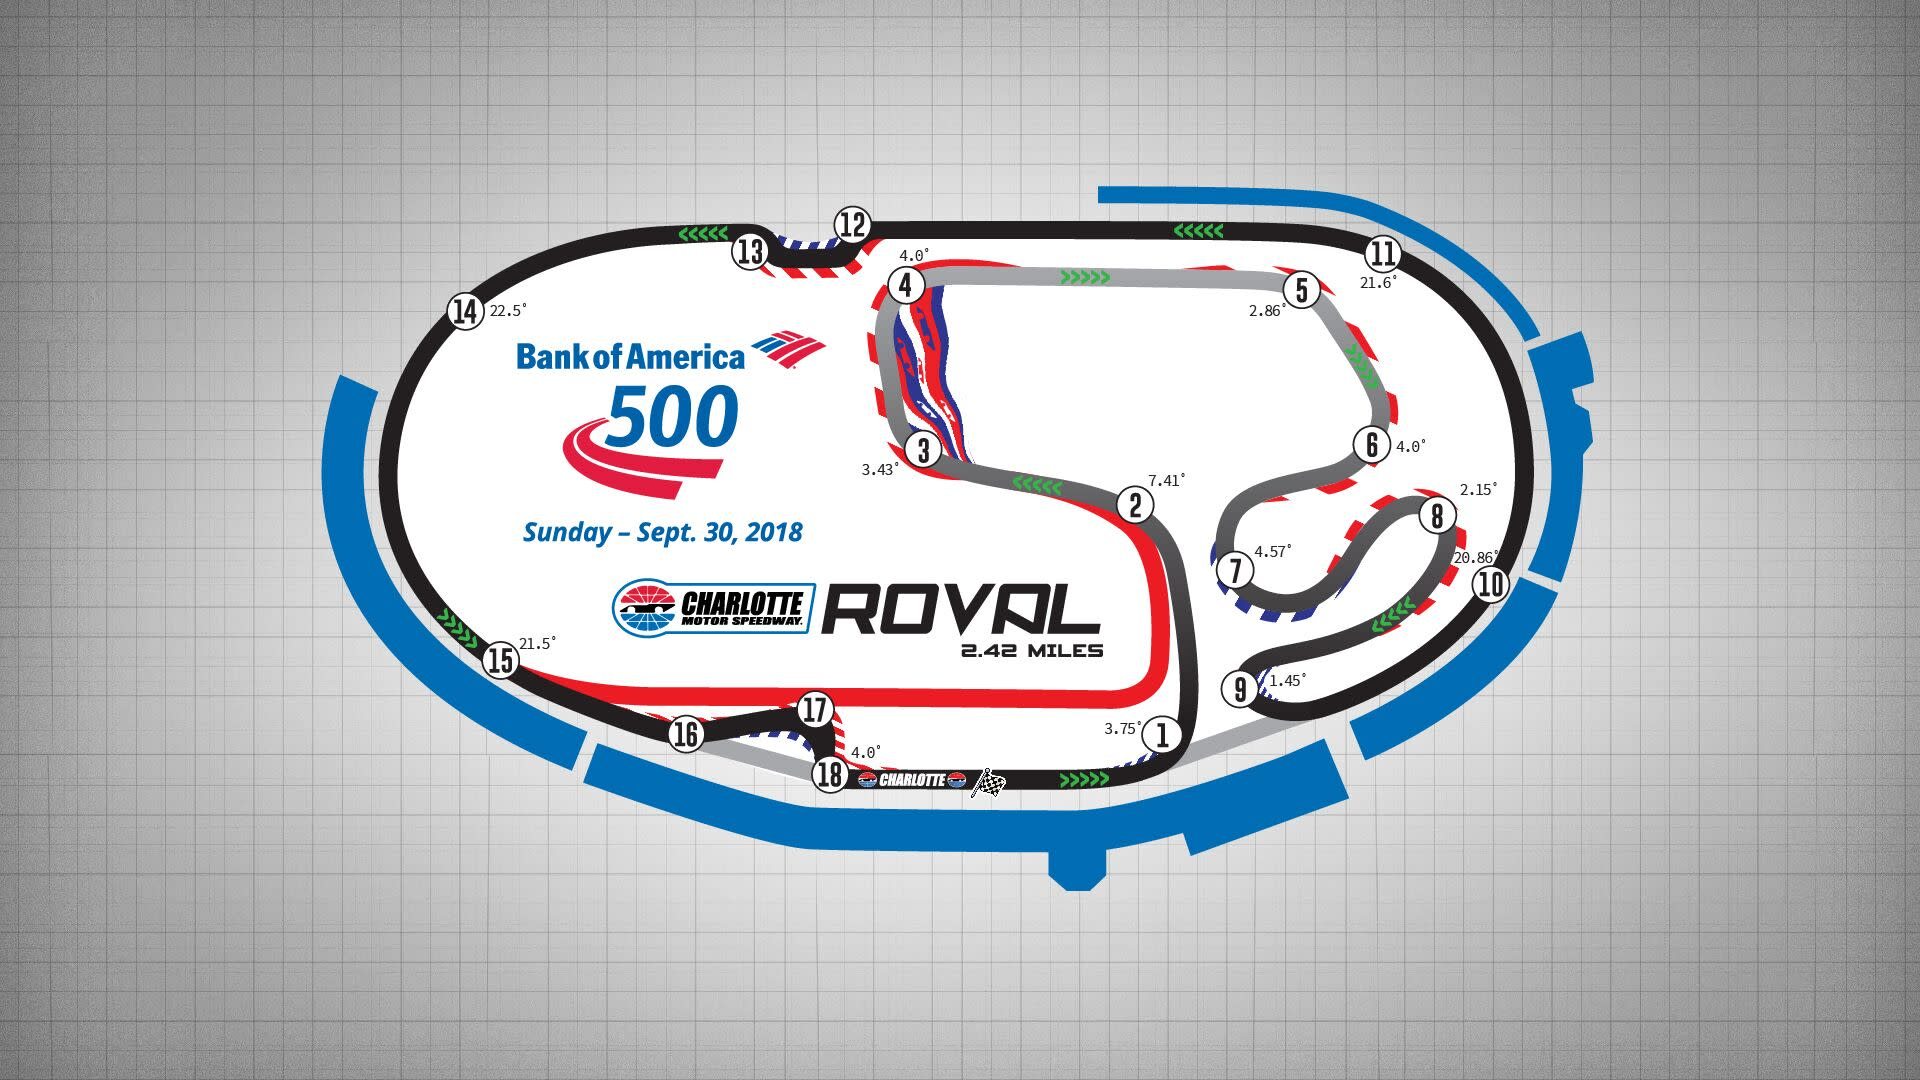 Charlotte adds two chicanes to roval layout for 2018 fall race